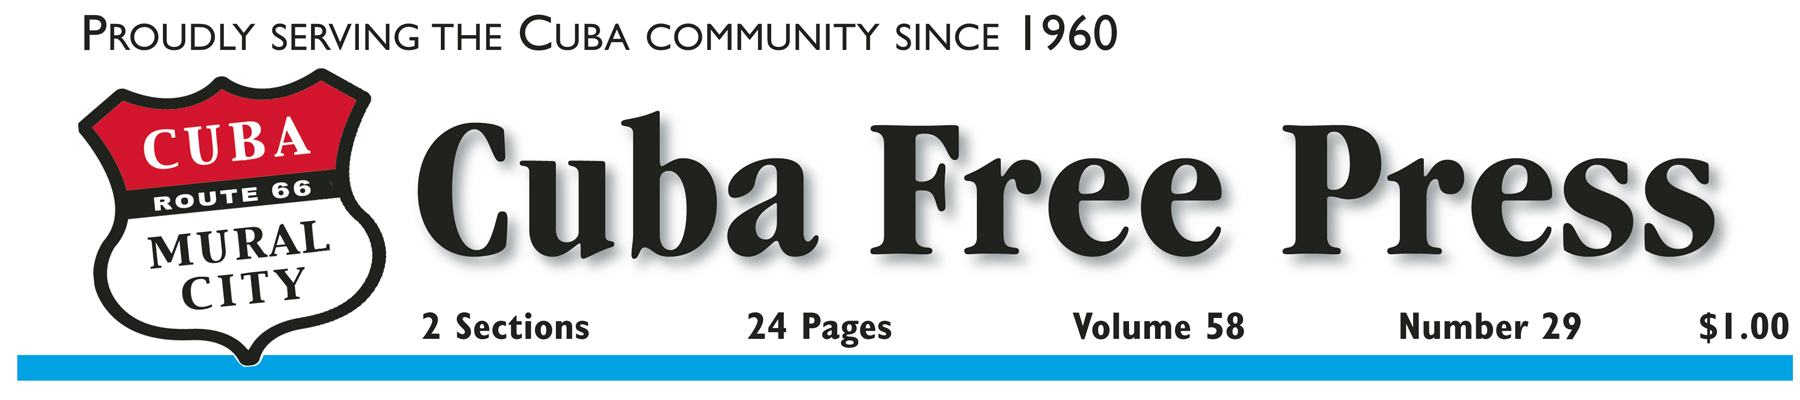 1 Year Cuba Free Press in Crawford and Adjoining Counties with website access